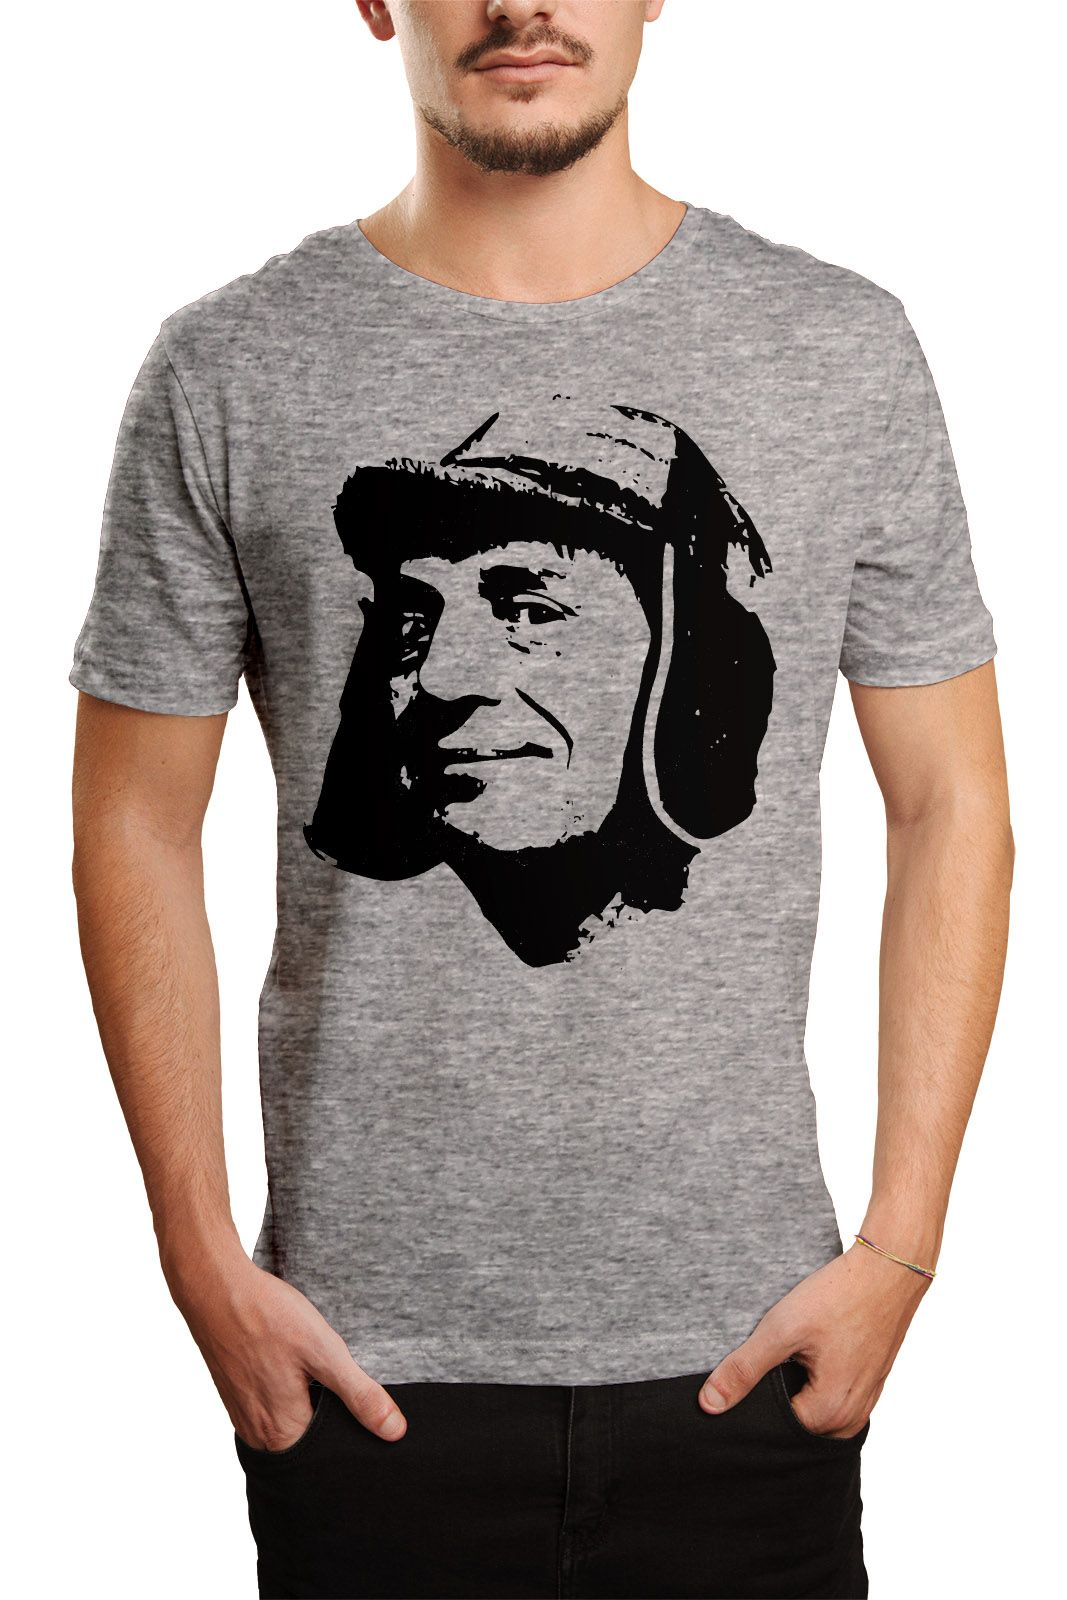 Camiseta Chaves - Geek  - HShop